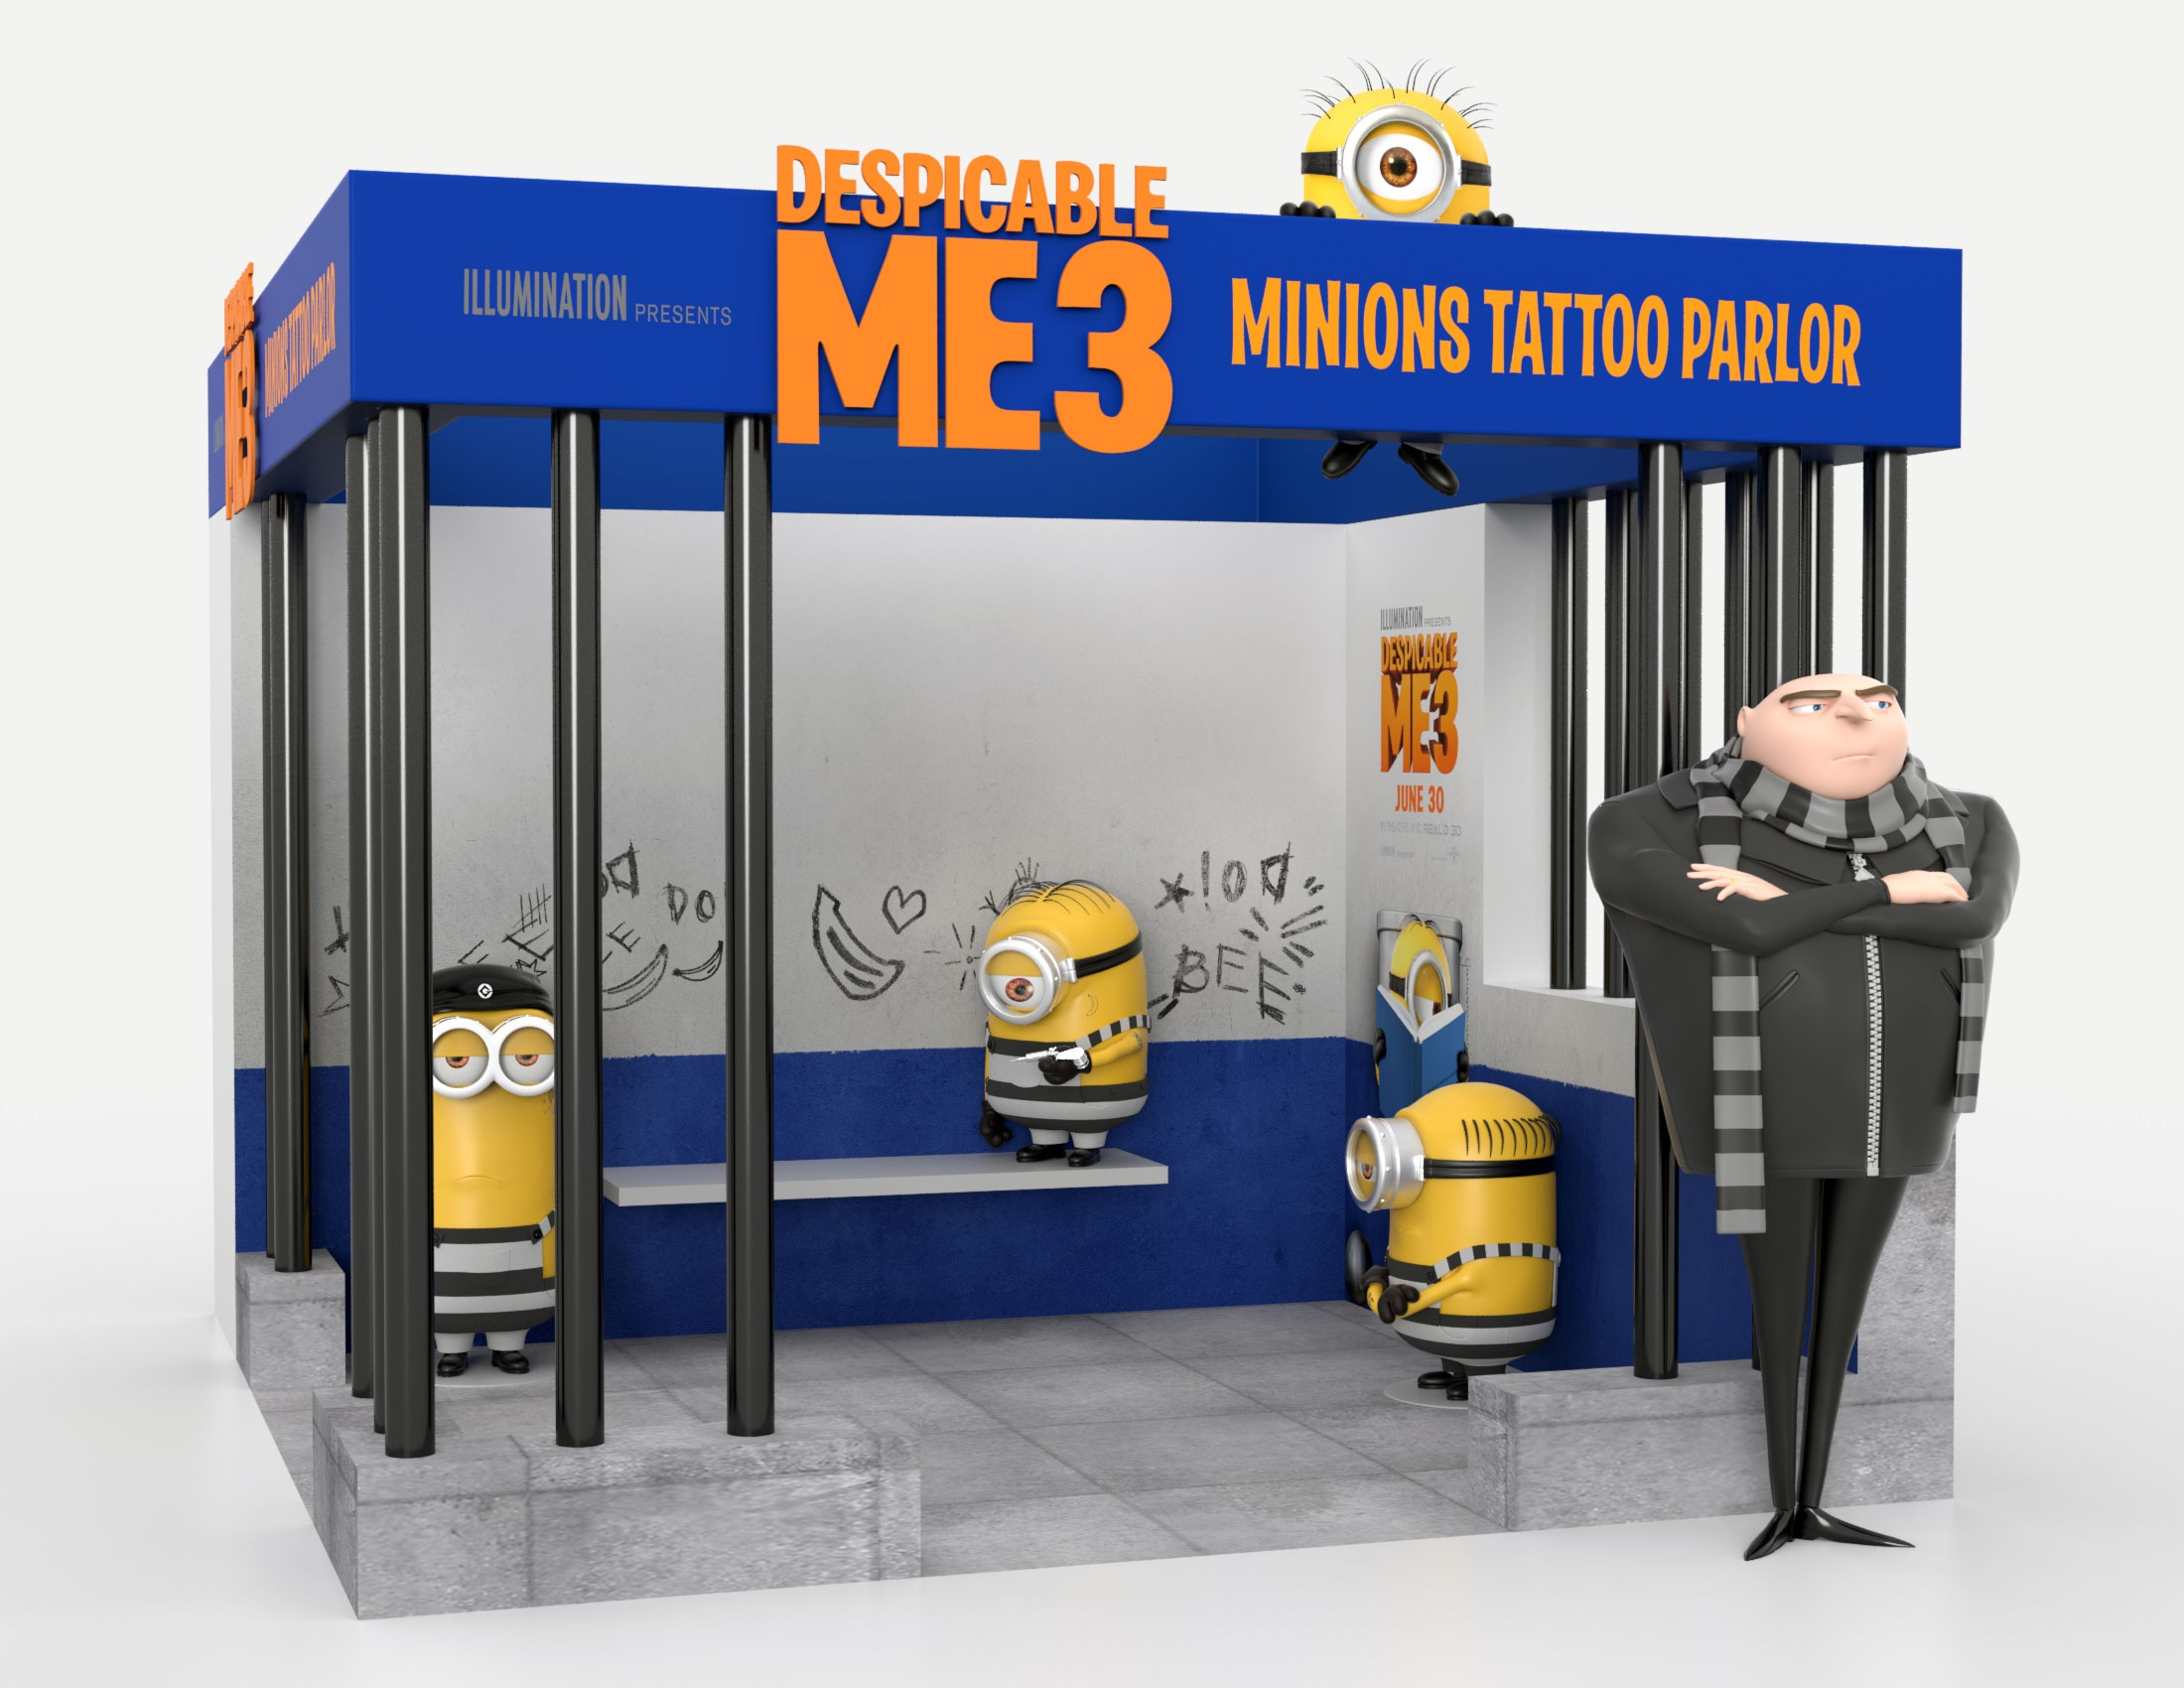 Thumbnail for Despicable Me 3 Tattoo Parlor Theatrical Display: Specialty